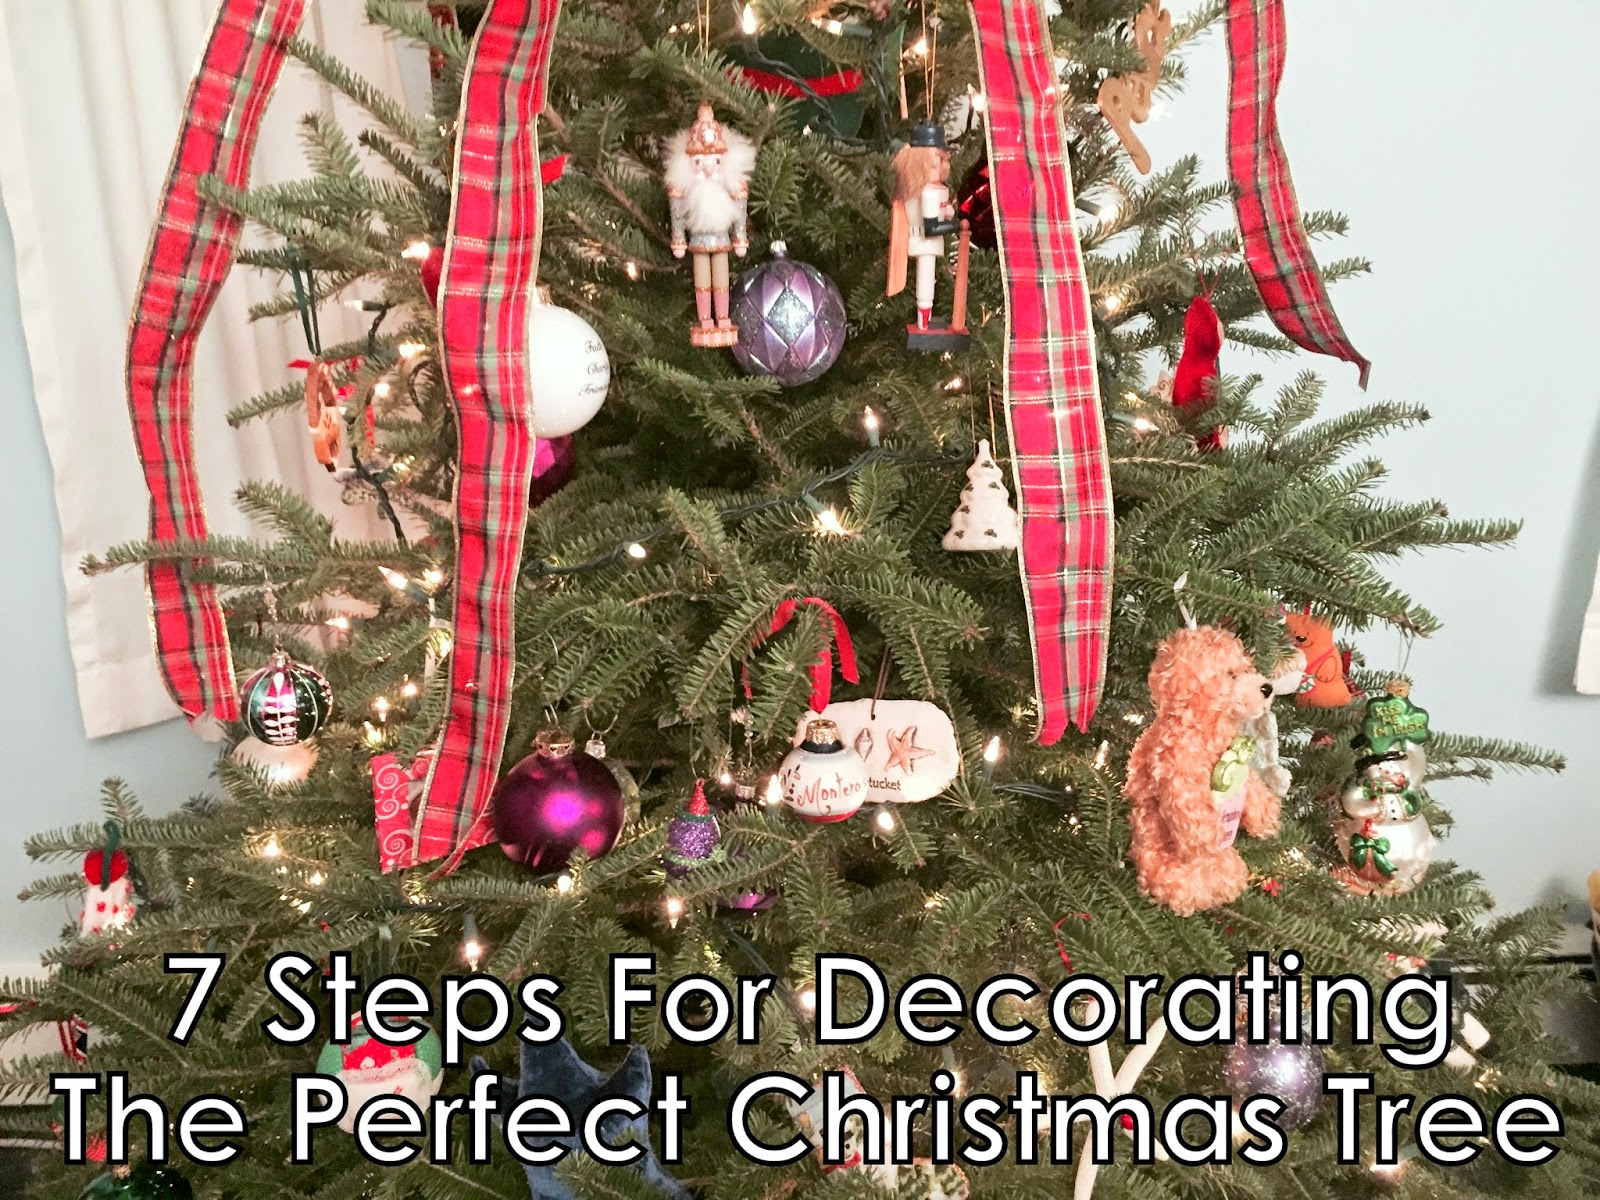 7 Steps For Decorating The Perfect Christmas Tree